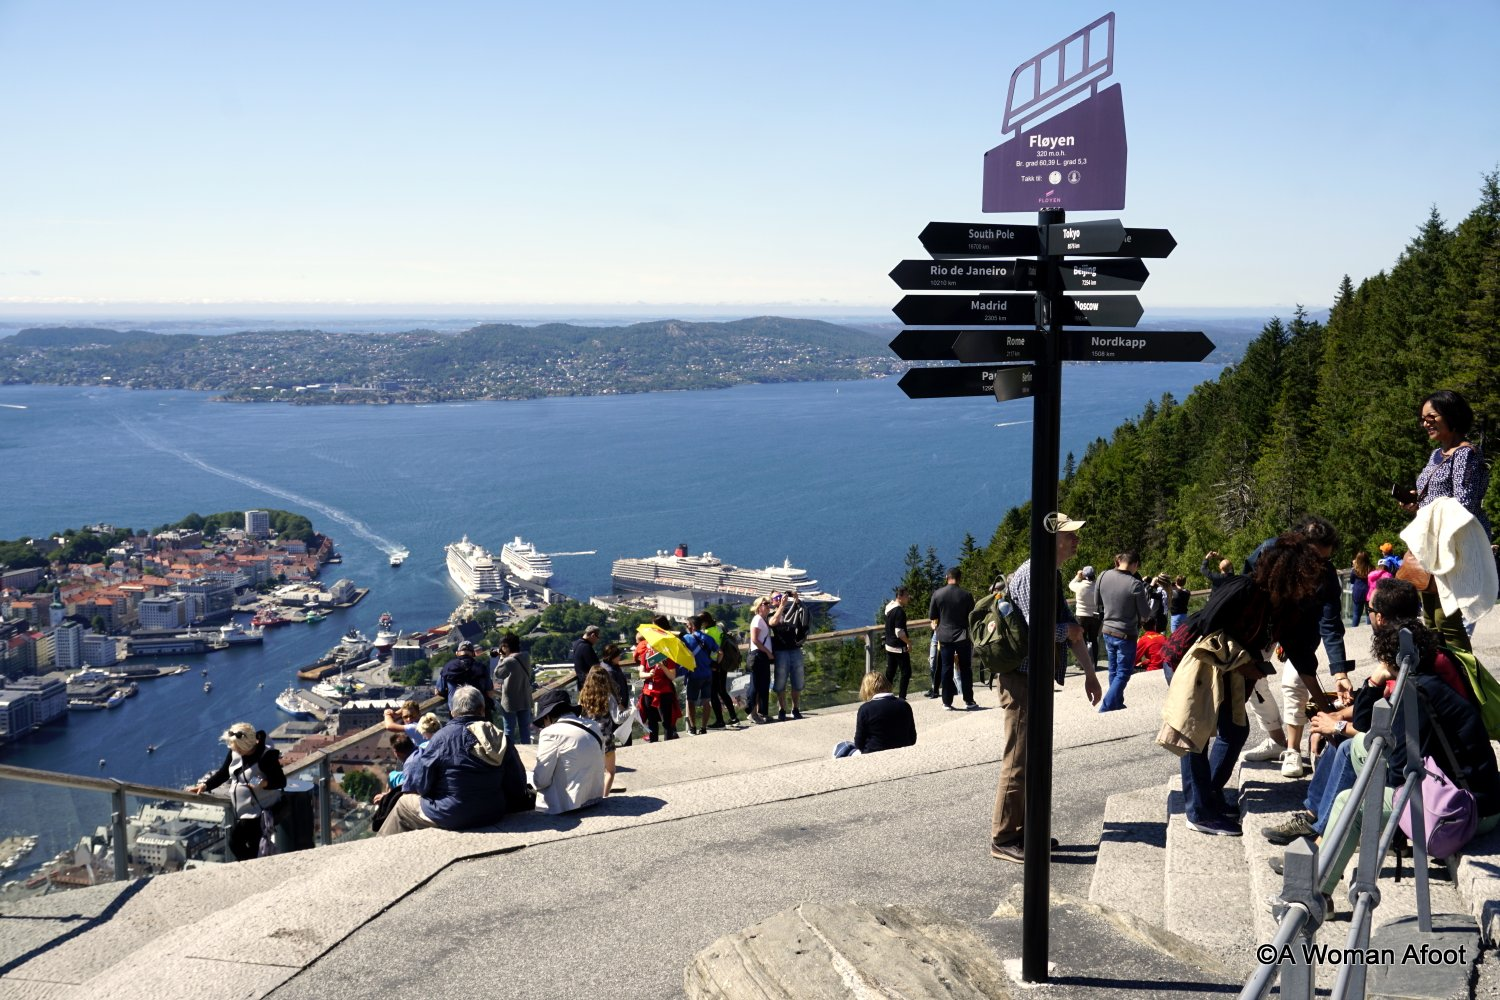 Bryggen is not the only attraction in Bergen! Learn about hiking opportunities and see fabulous views from the top of Mt. Ulriken and Mt. Fløyen at AWOMANAFOOT.COM. |What to do in Bergen, Norway | Urban hiking Bergen | Best views of Bergen | Active experiences in Bergen | Norwegian mountains | hiking trails | Urban adventure | #Bergen #Norway #Ulriken #Floyen #Mountains #Adventure #Hiking #BestDestinations